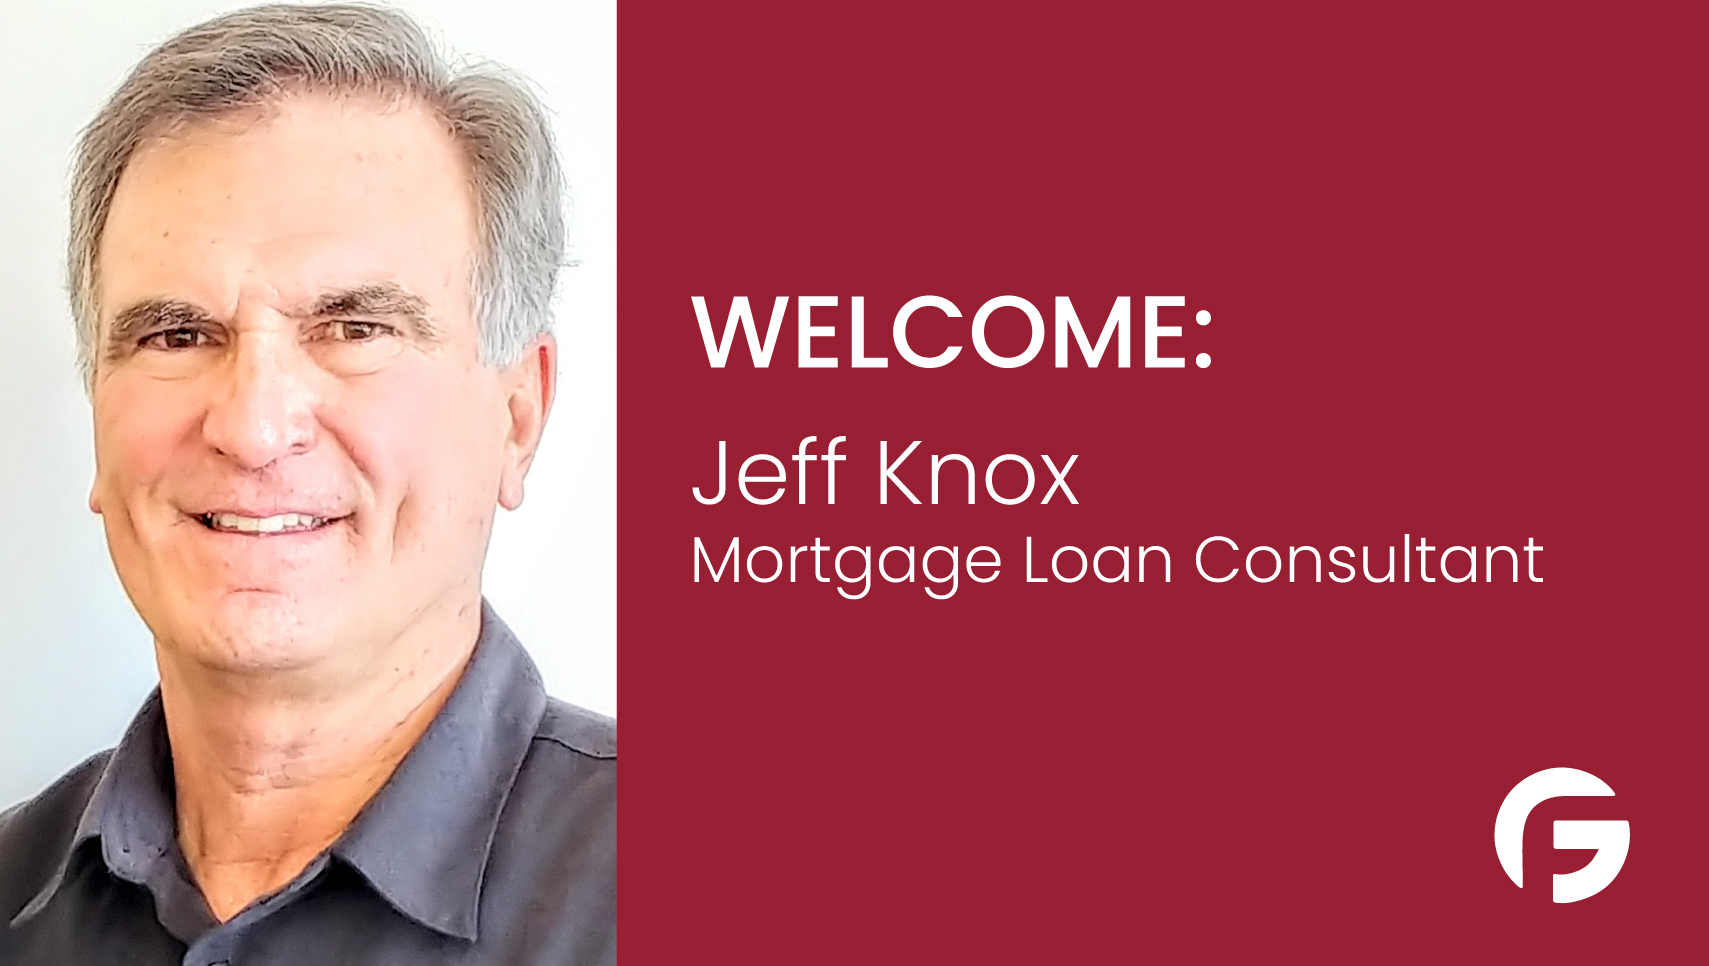 Jeff Knox, Loan Officer serving Oregon